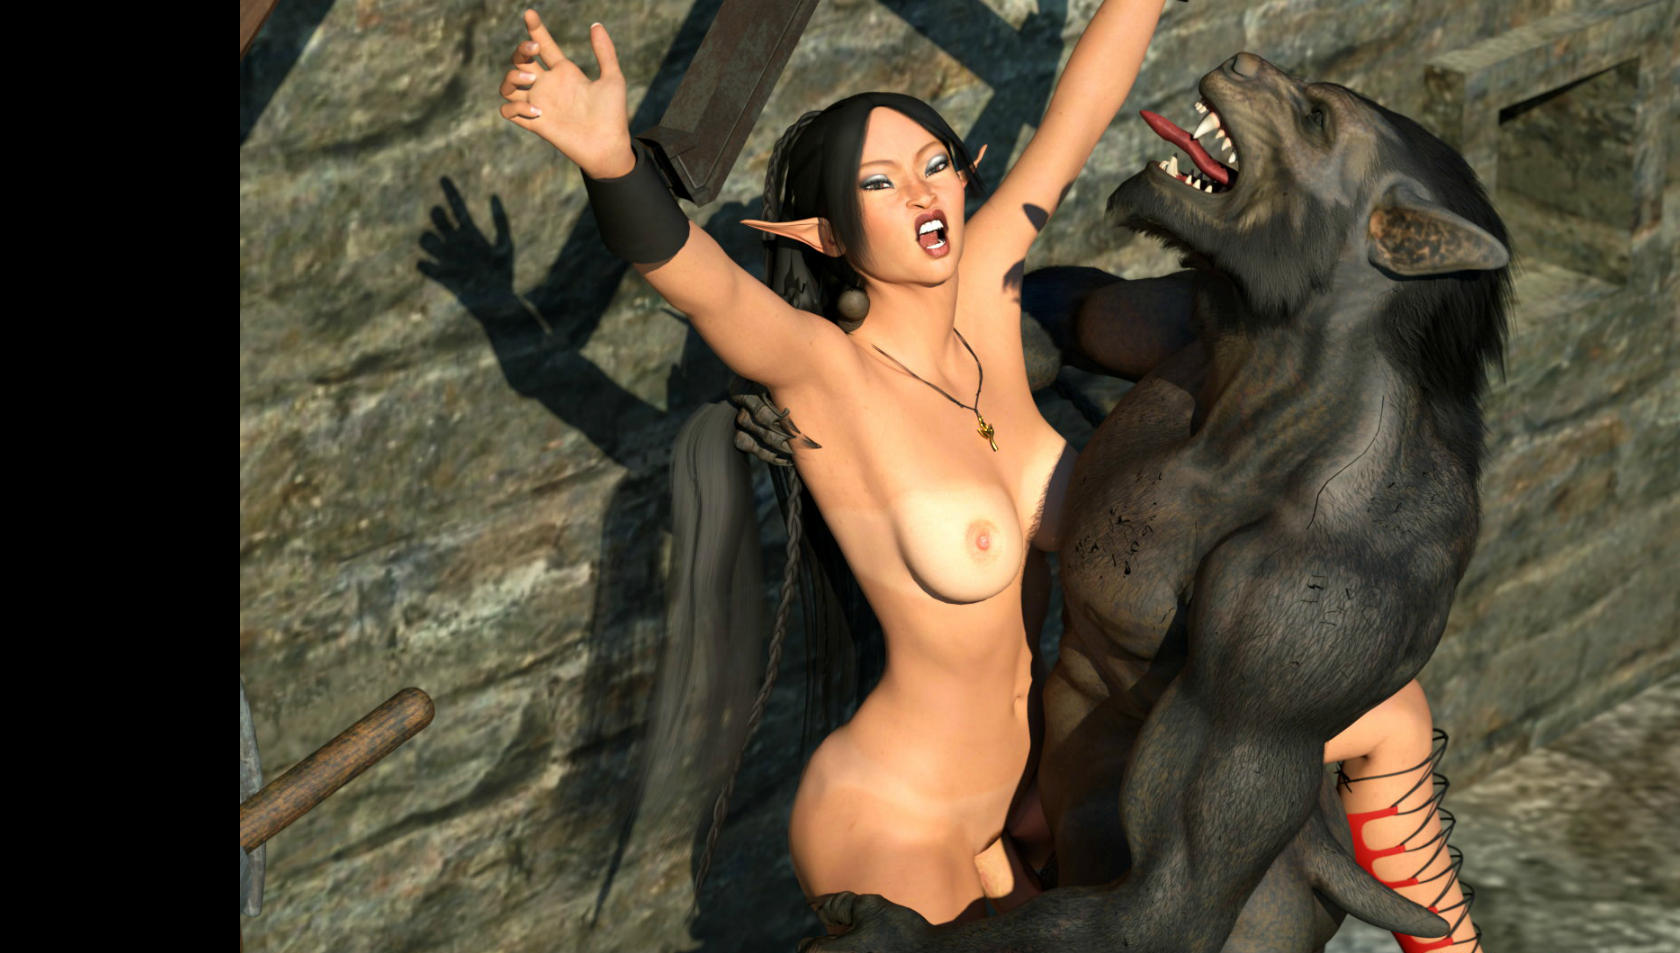 Hot girl getting fucked by werewolf porn dirty girl